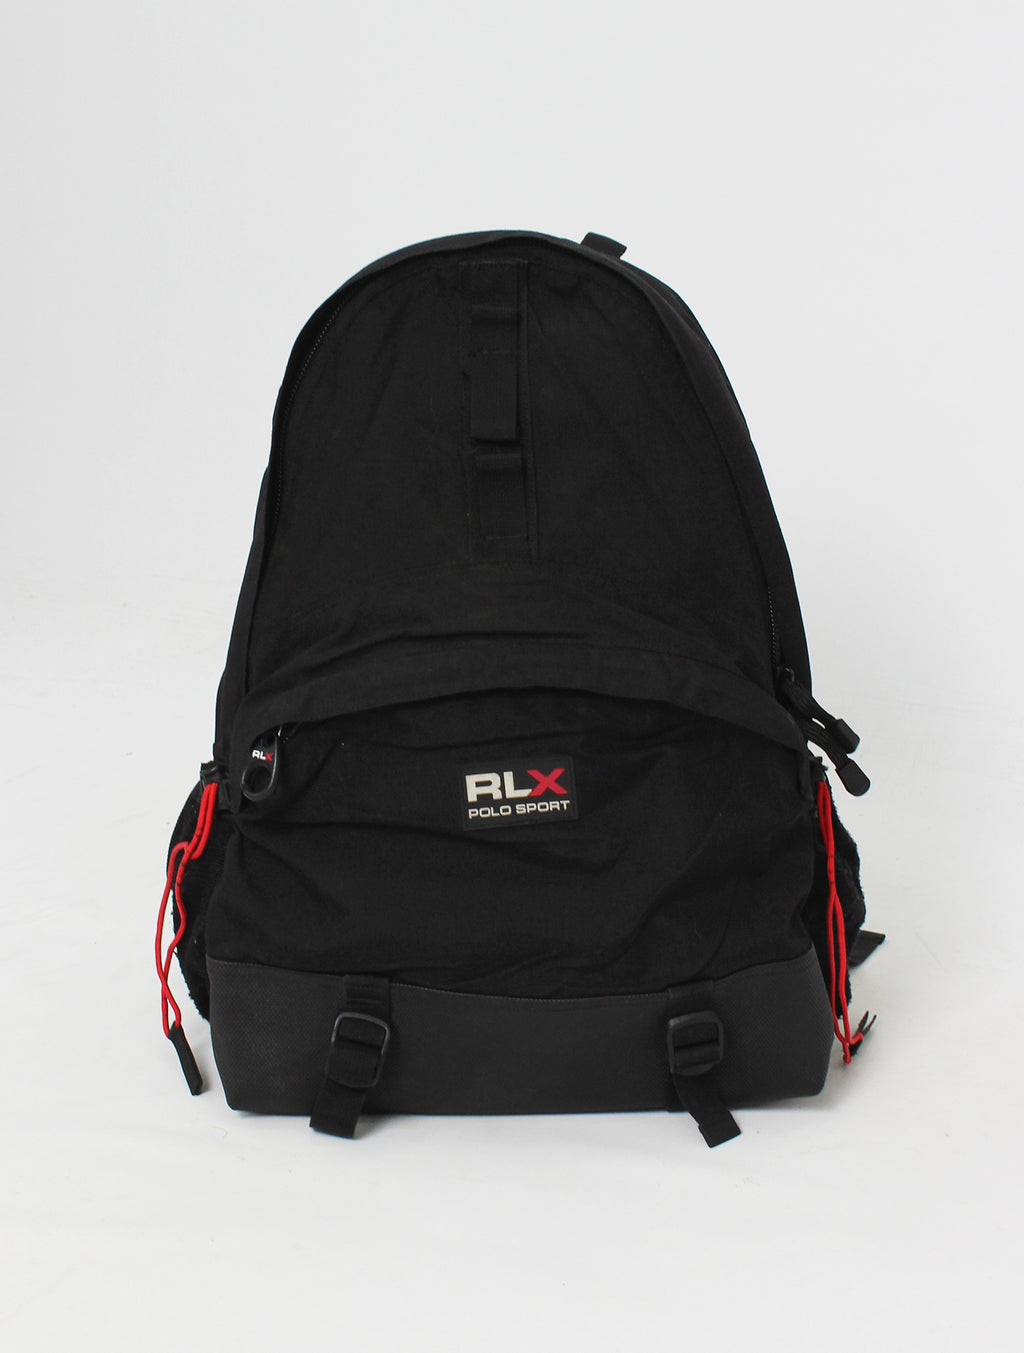 Ralph Lauren Polo Sport Large Backpack